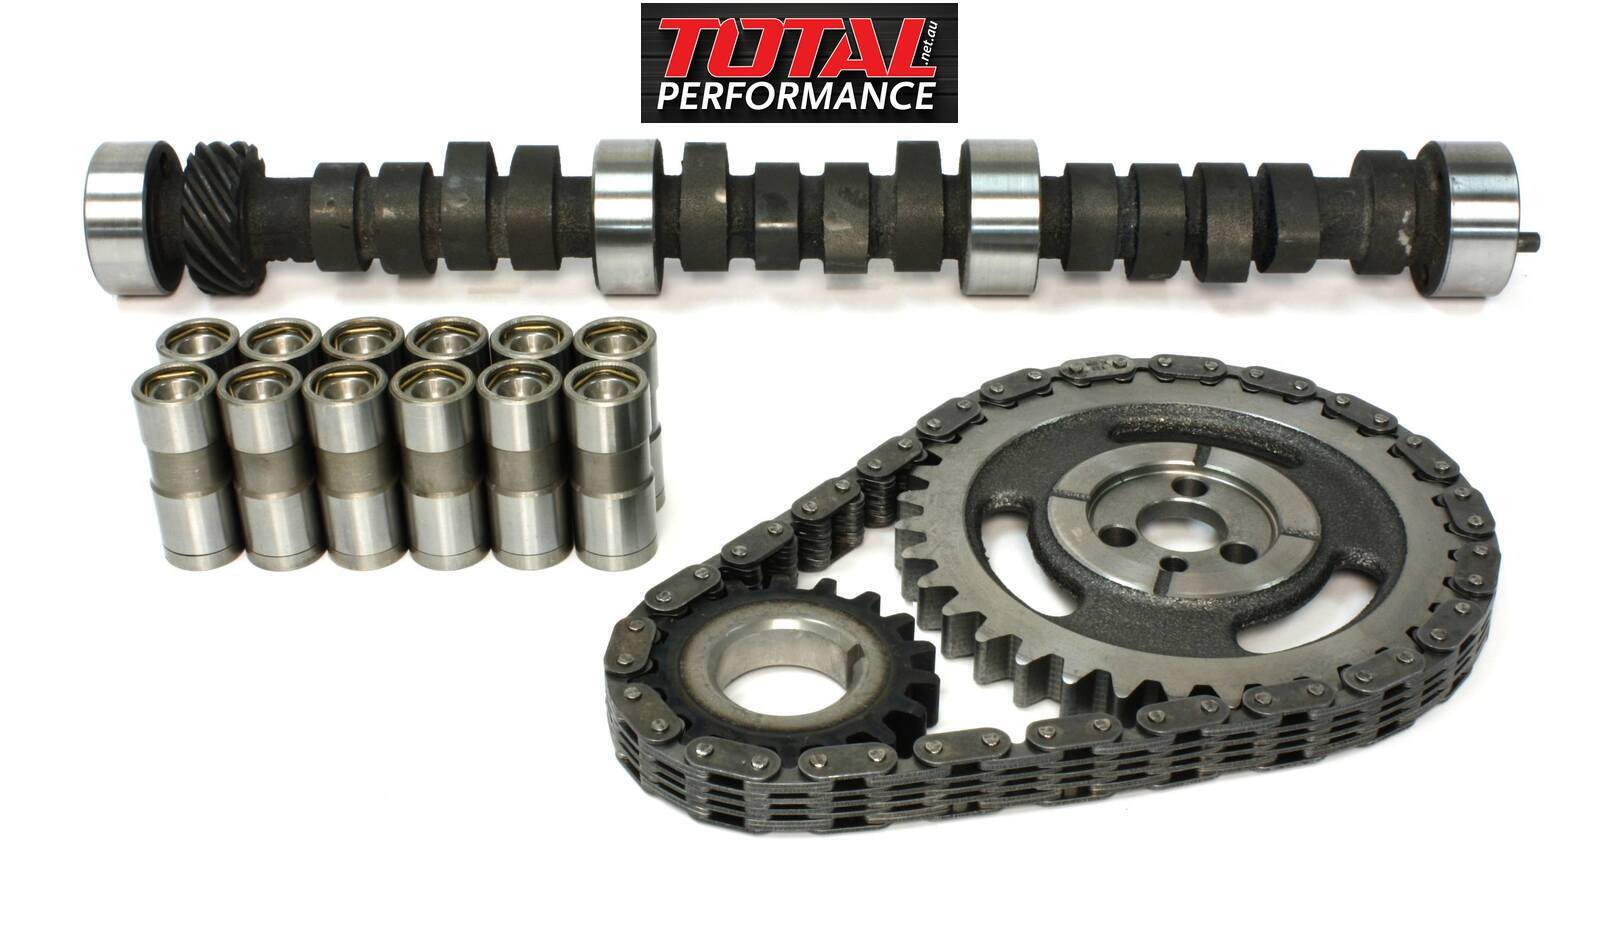 COMP Cams SK31-242-3 Xtreme Energy 224//230 Hydraulic Flat Cam SK-Kit for Ford 221-302